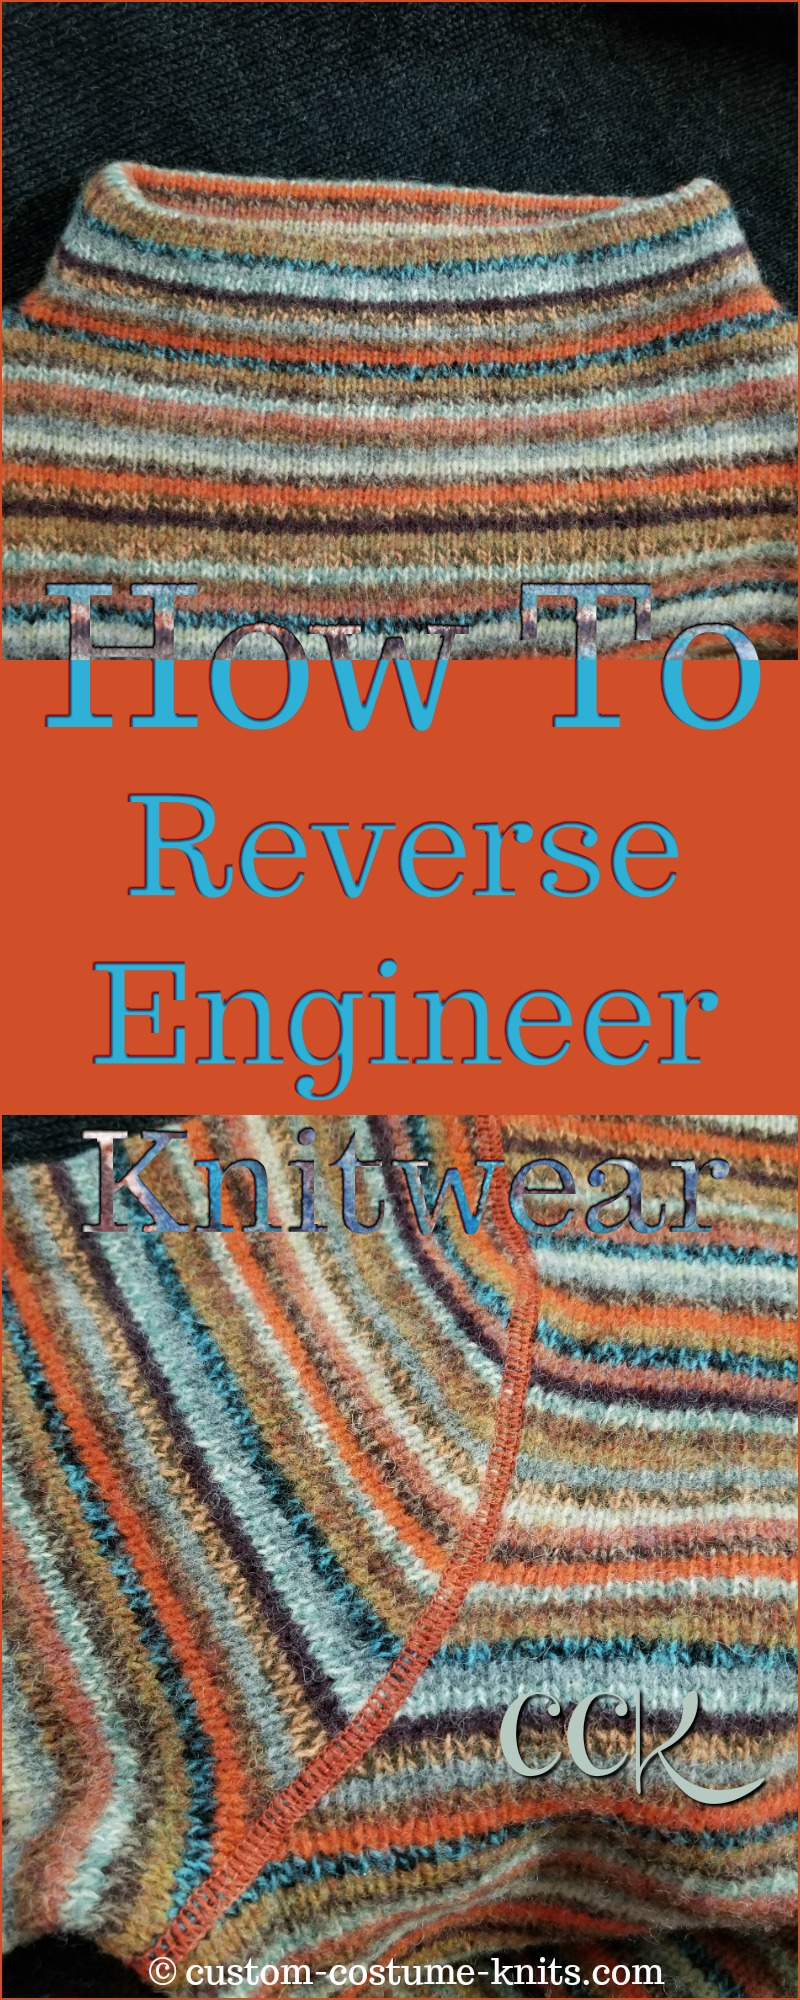 Reverse Engineer Knitwear - Image shows the neckline and the sleeve top-stitching detail in this How-To Tutorial